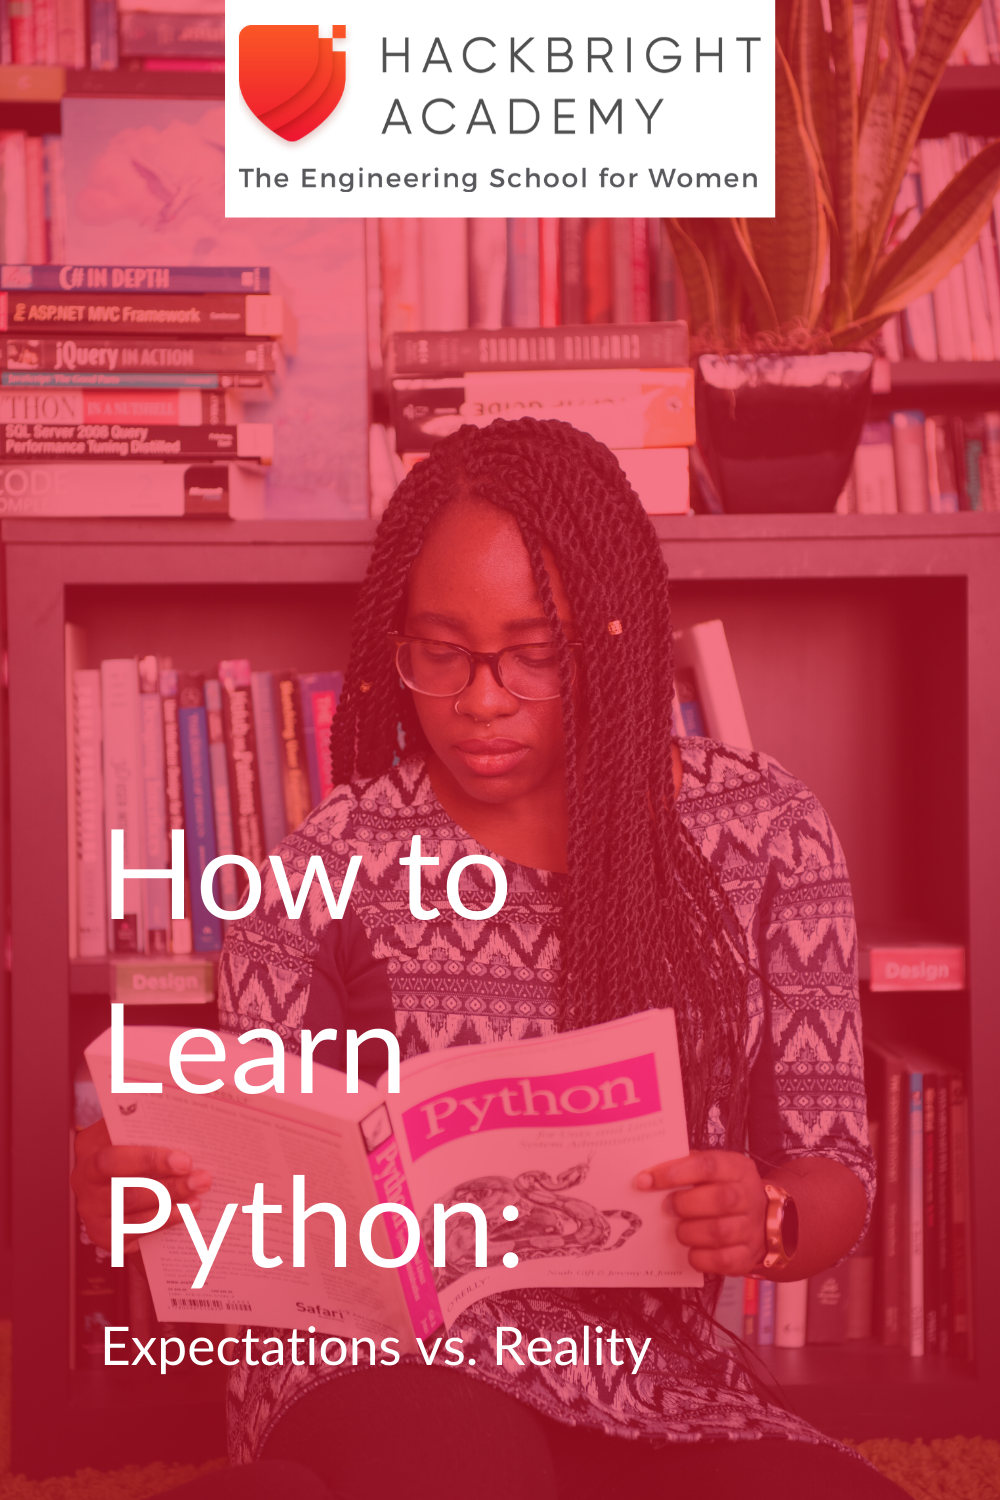 How to Learn Python: Expectations vs. Reality